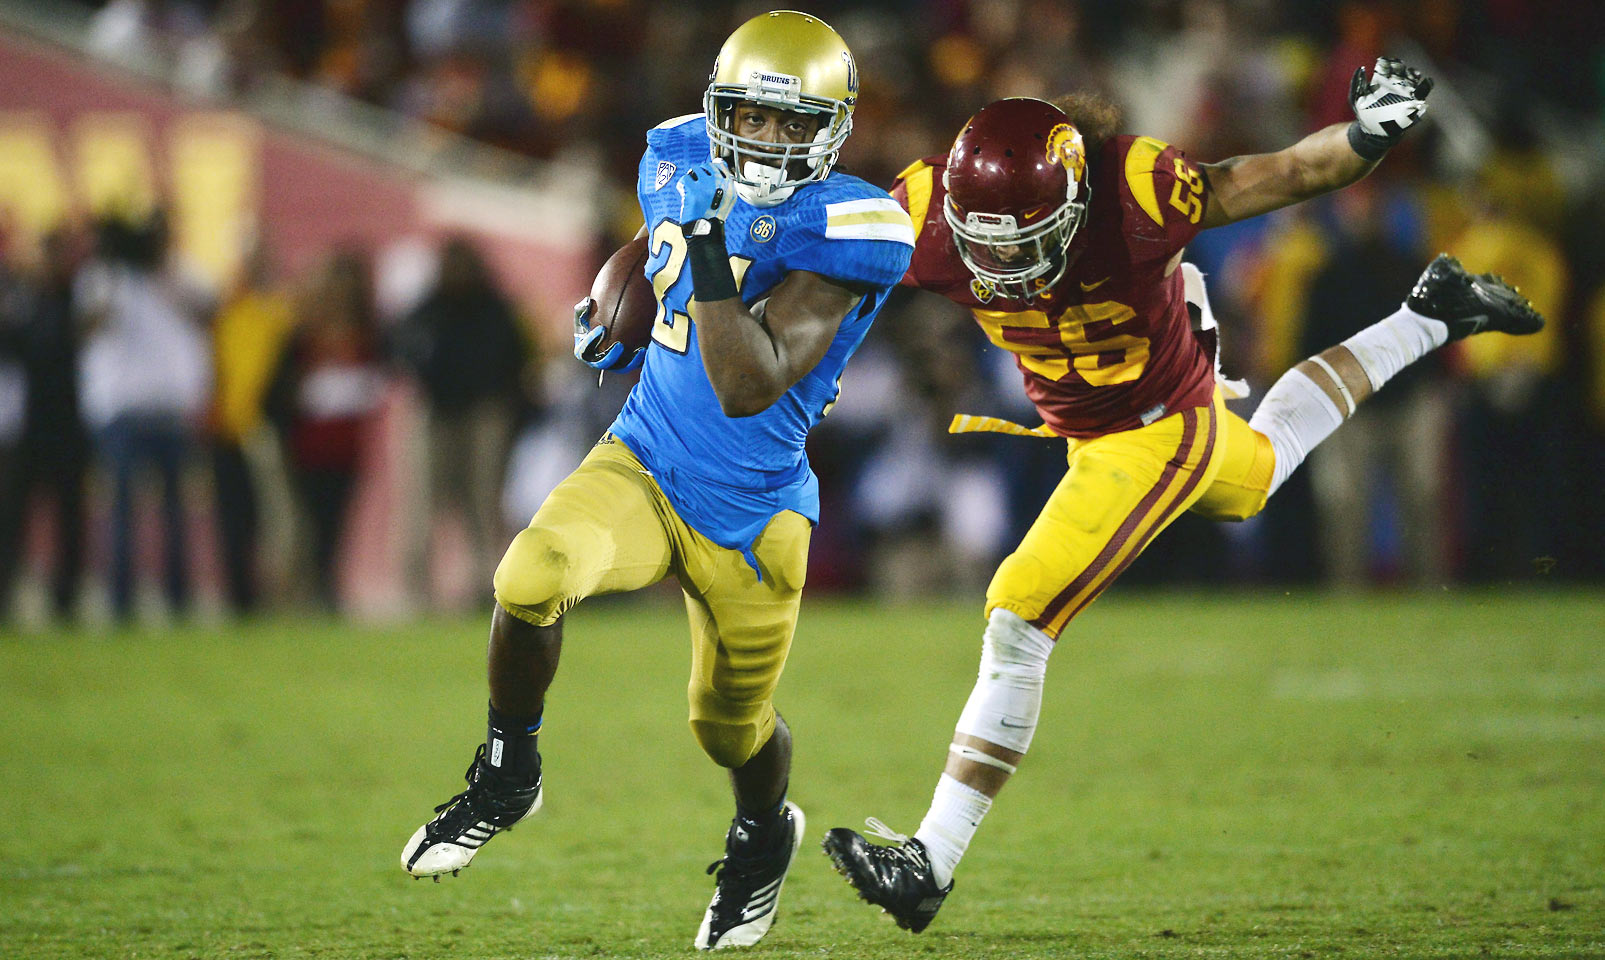 Perkins is—you guessed it—a running back who can also threaten defenses with his ability as a receiver. The rising junior averaged over six yards per carry and over seven yards per catch in 2014. His 1,575 yards on the ground last season were good for the second-highest single-season mark in UCLA history.